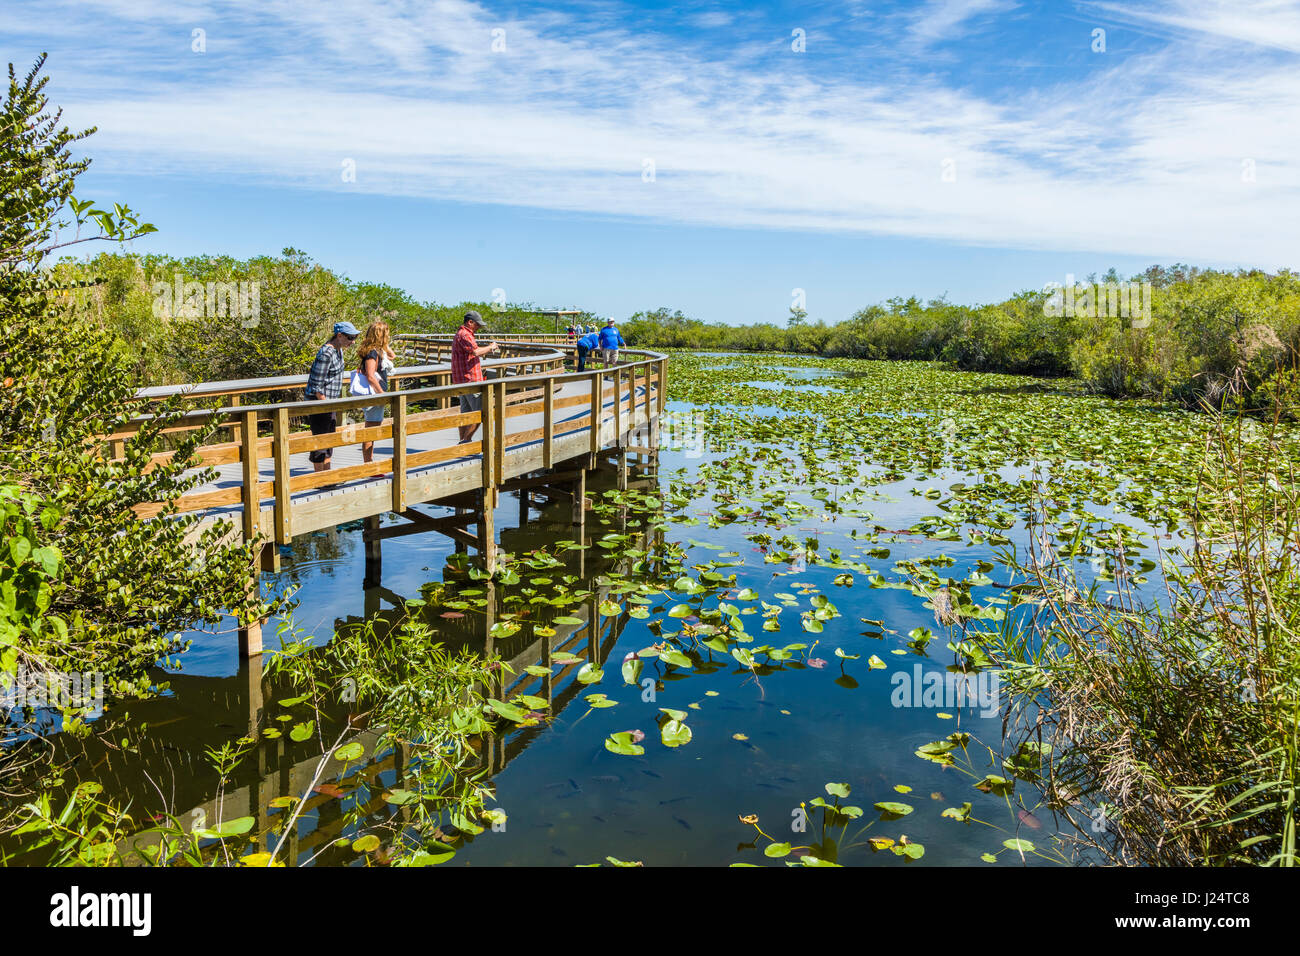 The popular Anhinga Trail at the Royal Palms Visitor Center though sawgrass marsh in the Everglades National Park - Stock Image